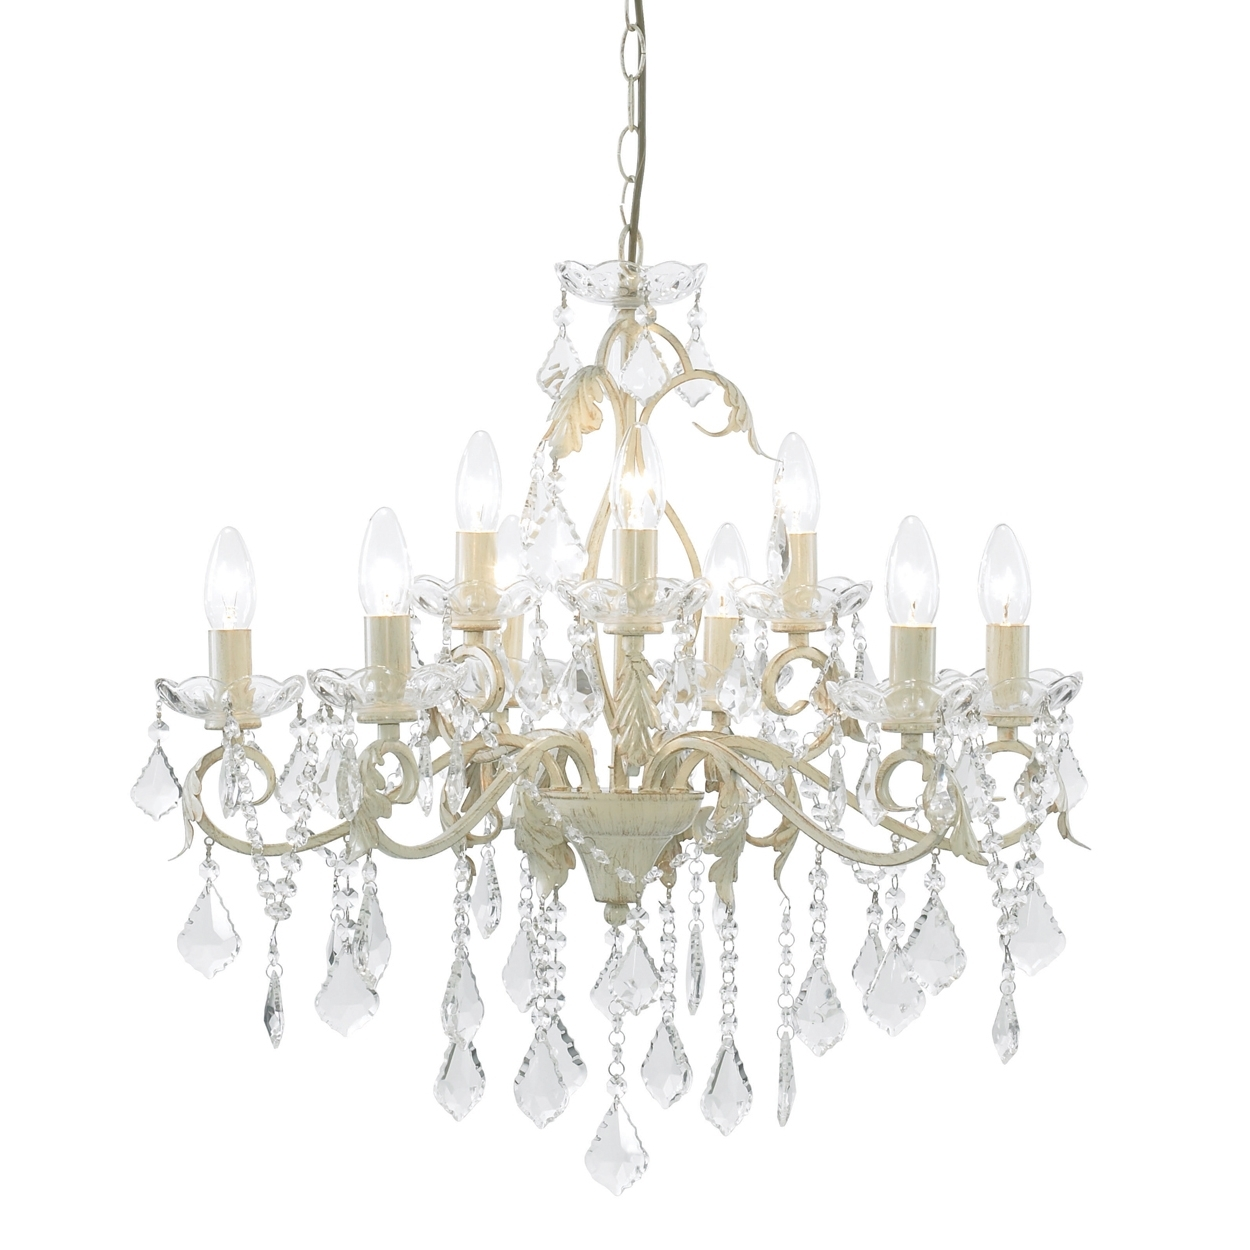 Widely Used Cream Chandeliers Intended For Chandeliers Design : Magnificent Cream And Gold Crystal Chandelier (View 19 of 20)